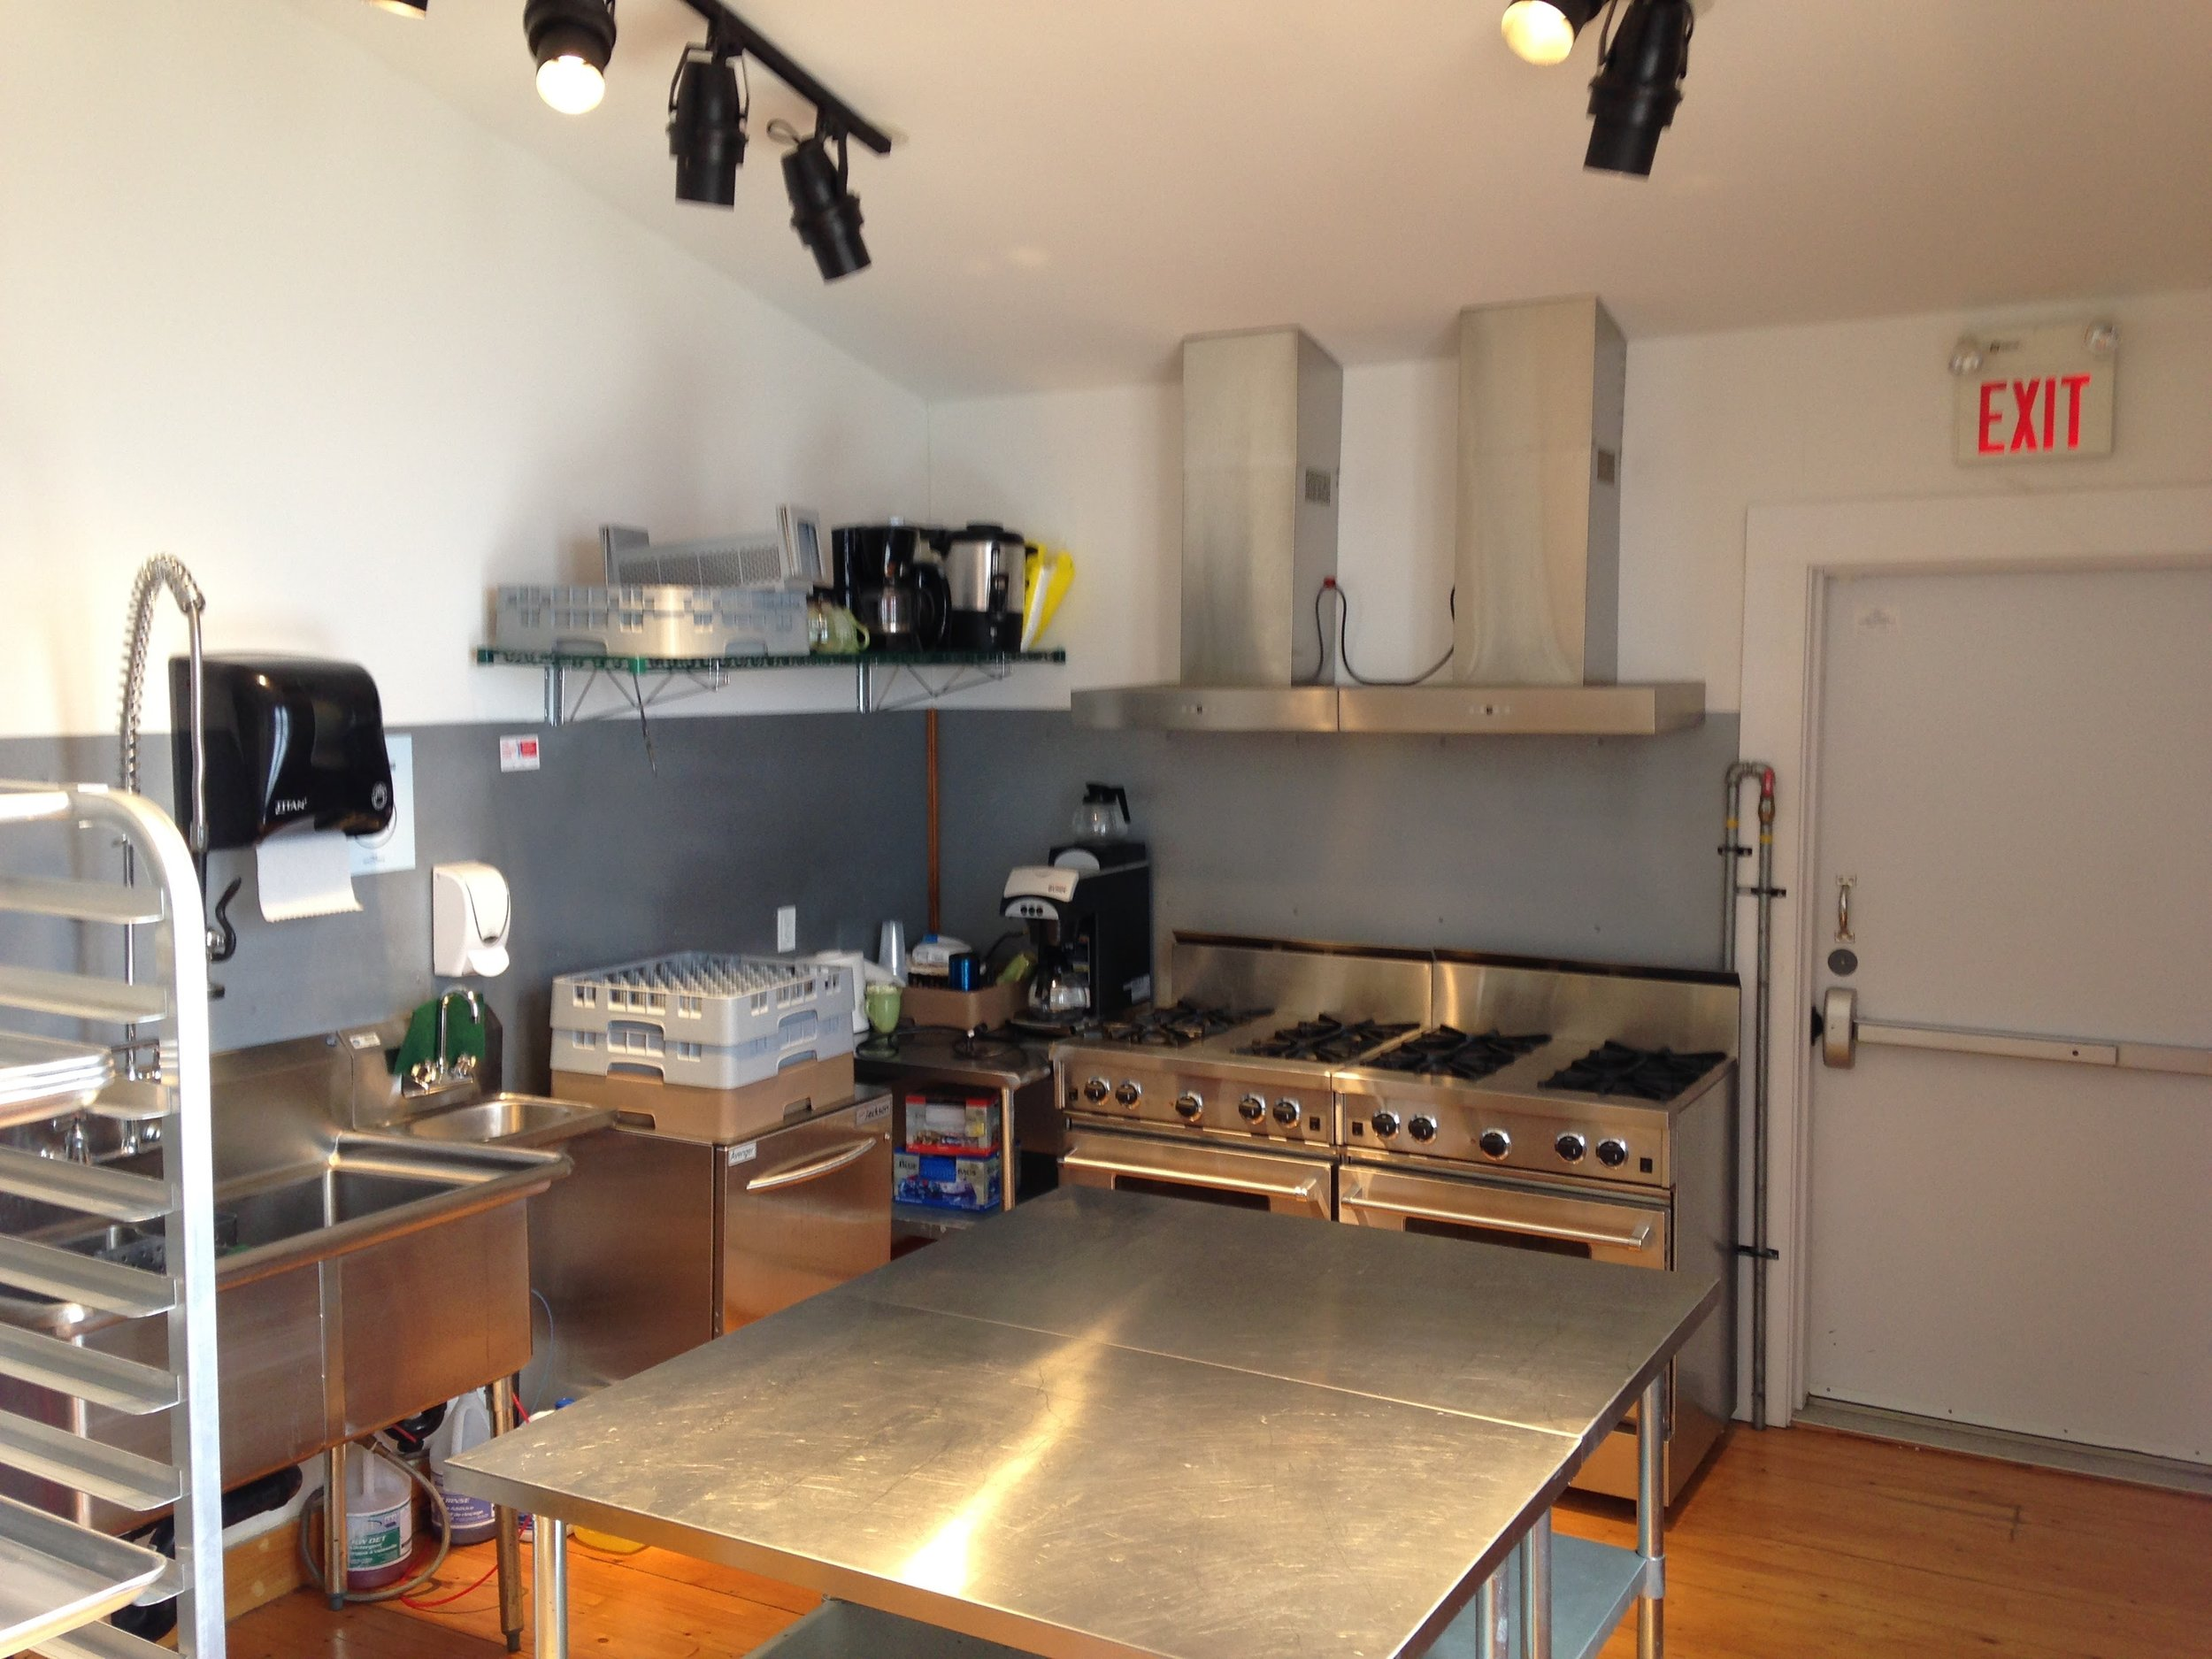 Full Kitchen   The kitchen facilities will allow your caterers to work unimpeded, to prepare and serve your guests on time and with no issue.